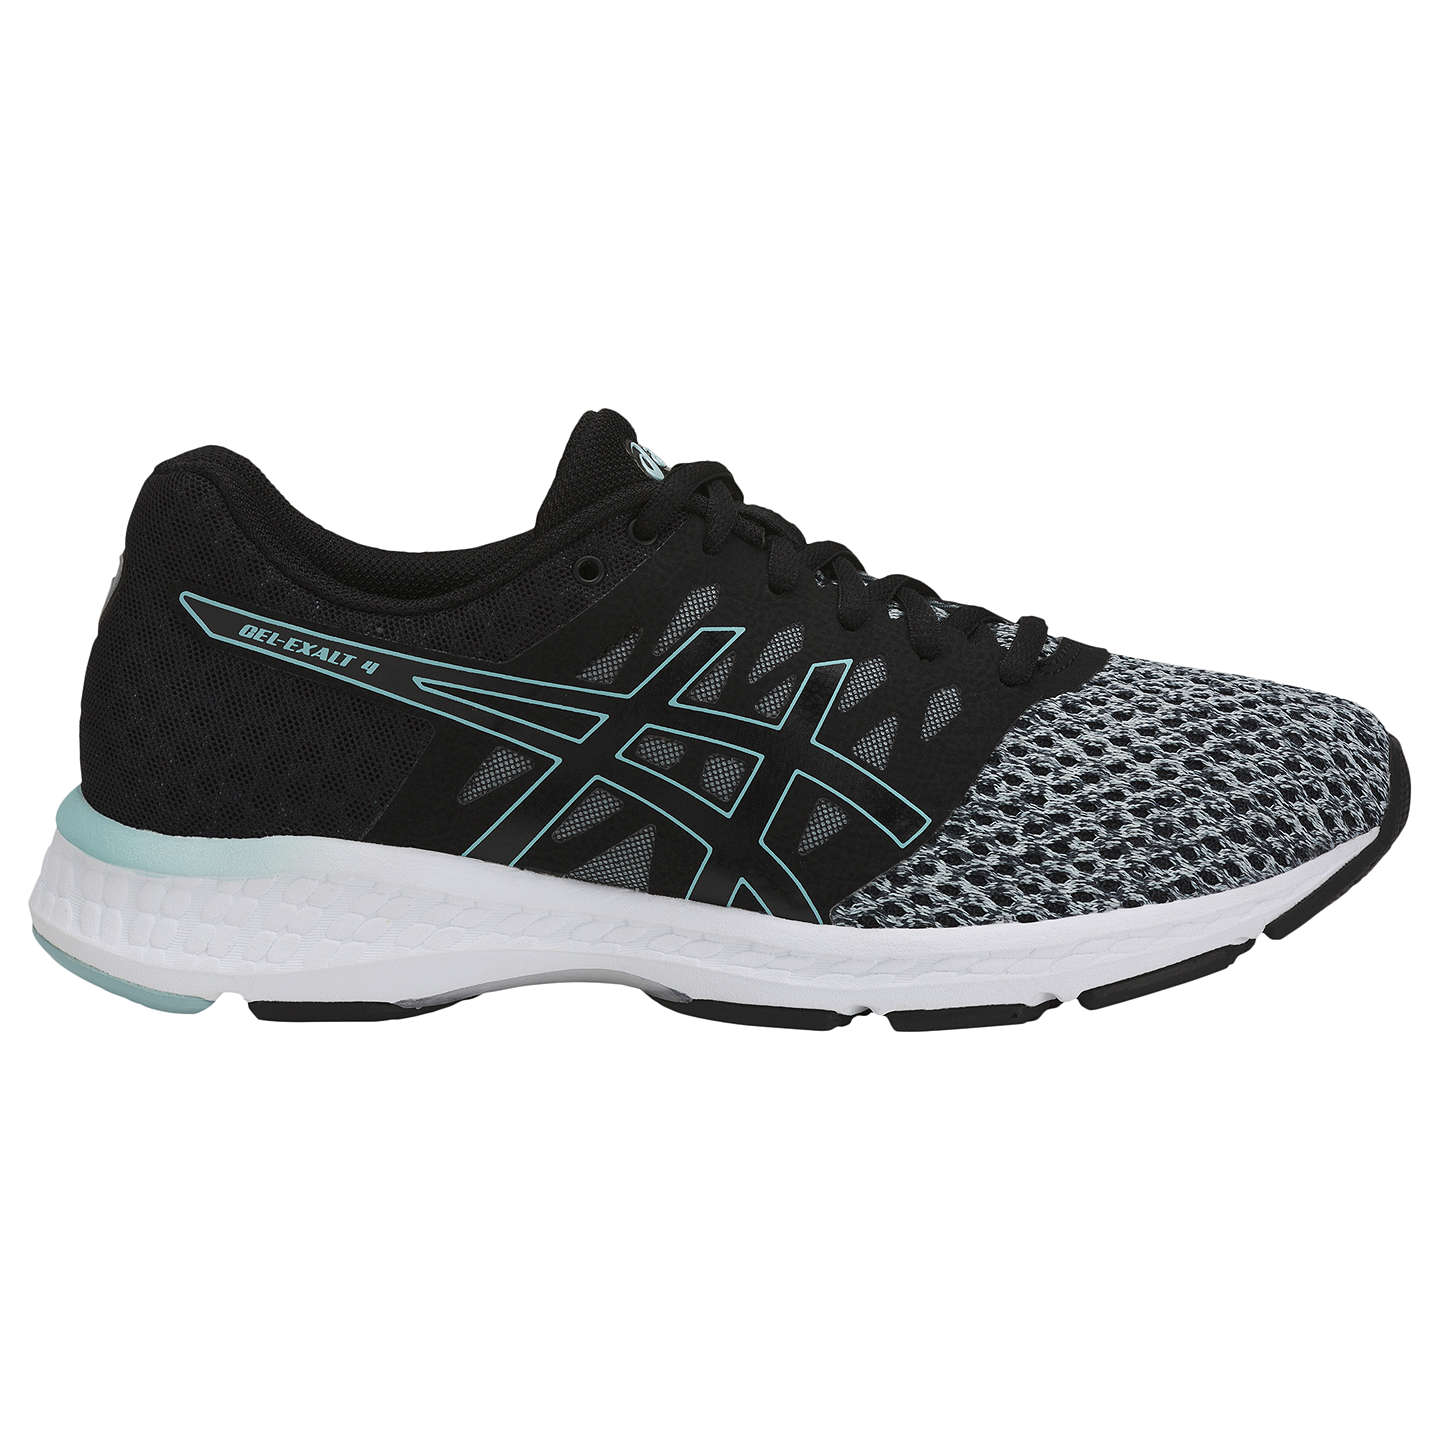 asics shoes afterpay belgie zweden live tv 647876